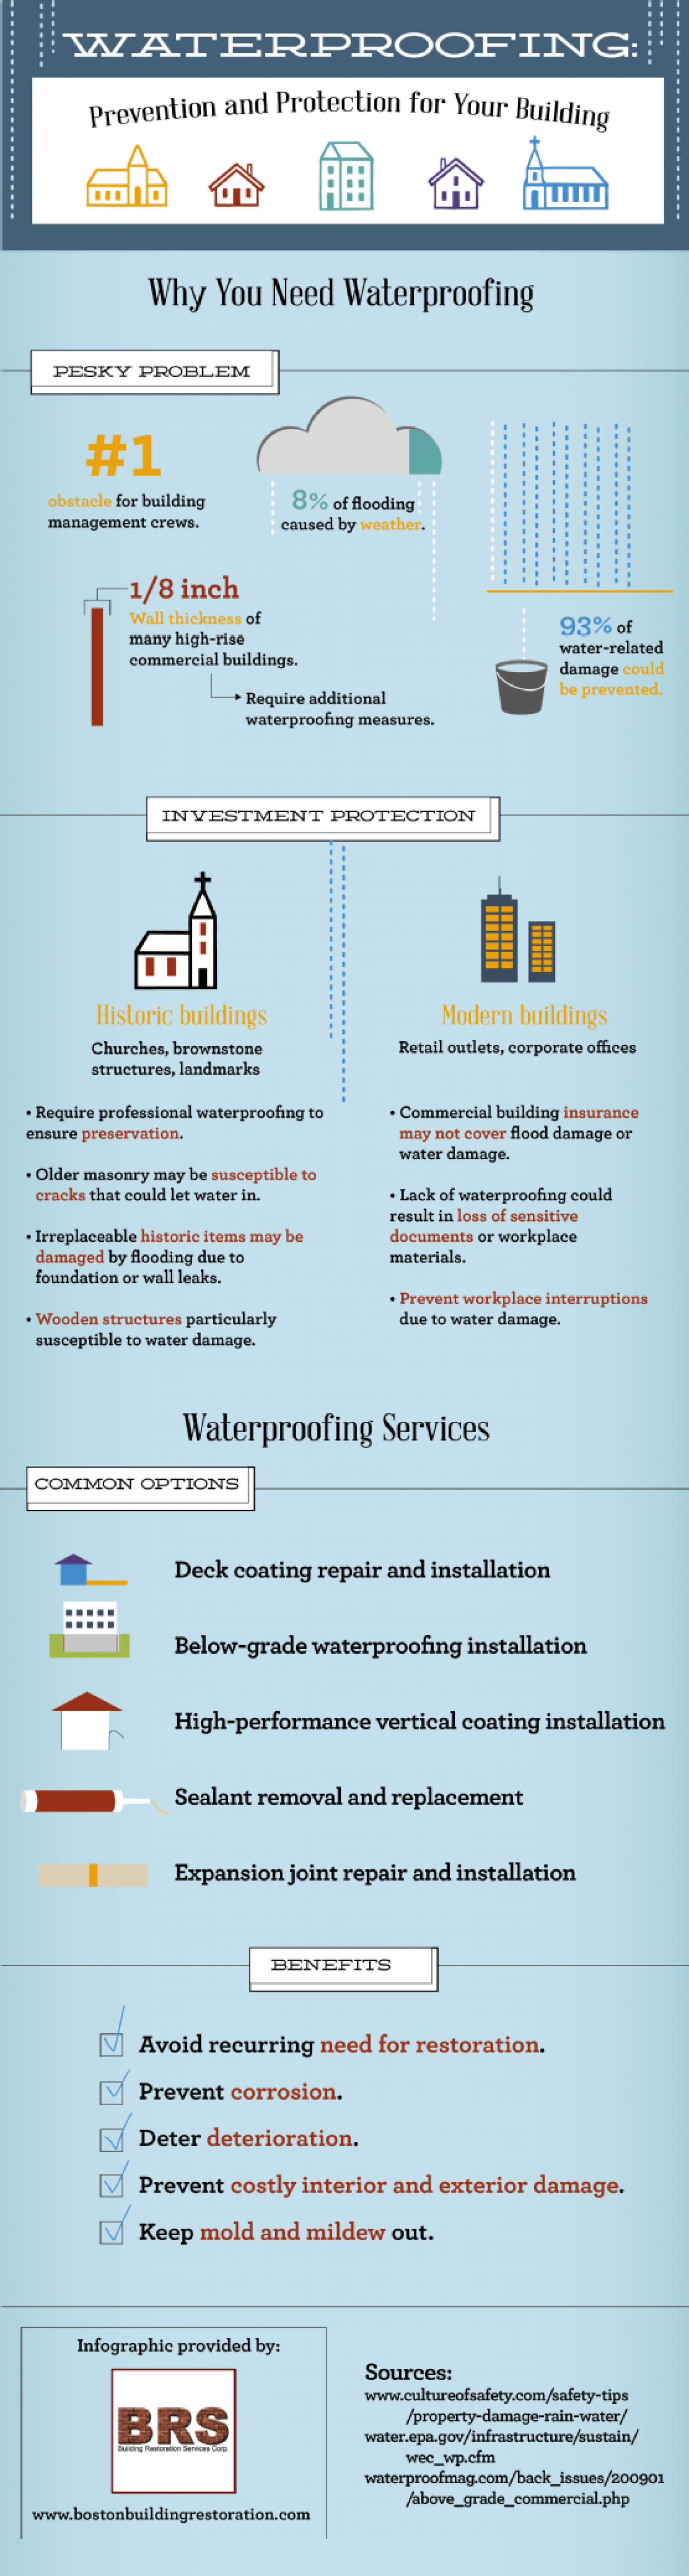 Waterproofing: Prevention and Protection for Your Building  Infographic